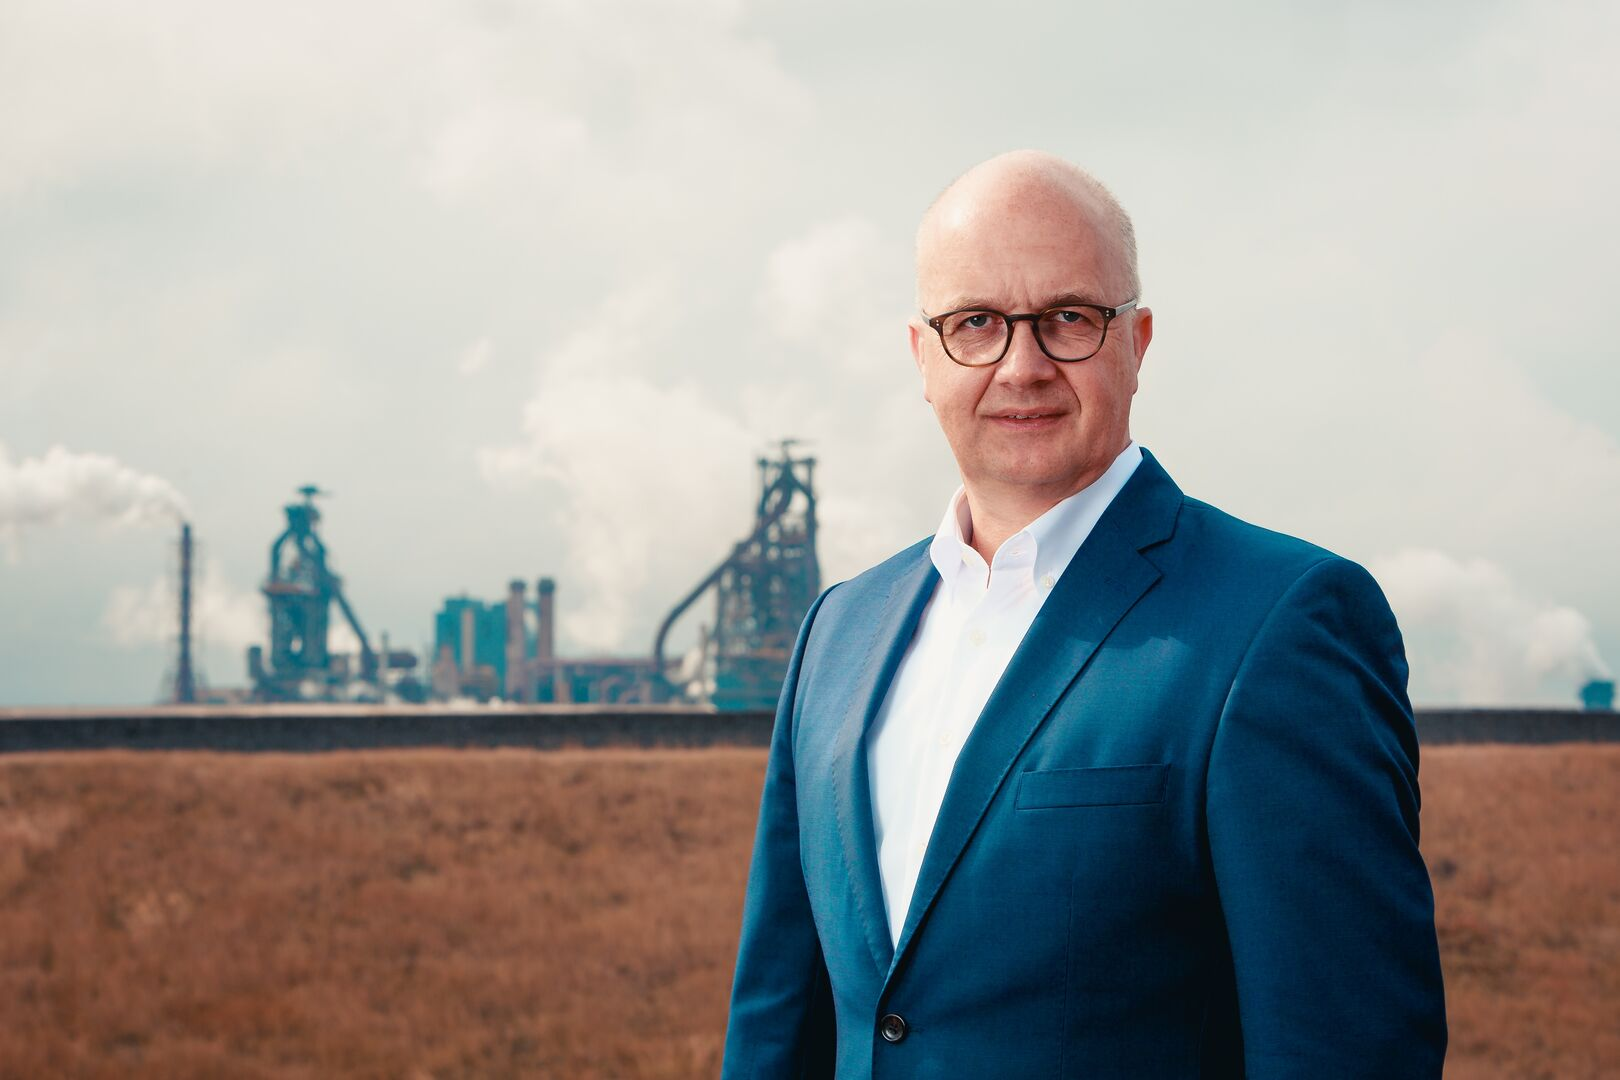 Dr Henrik Adam Chief Executive Officer, Tata Steel in Europe